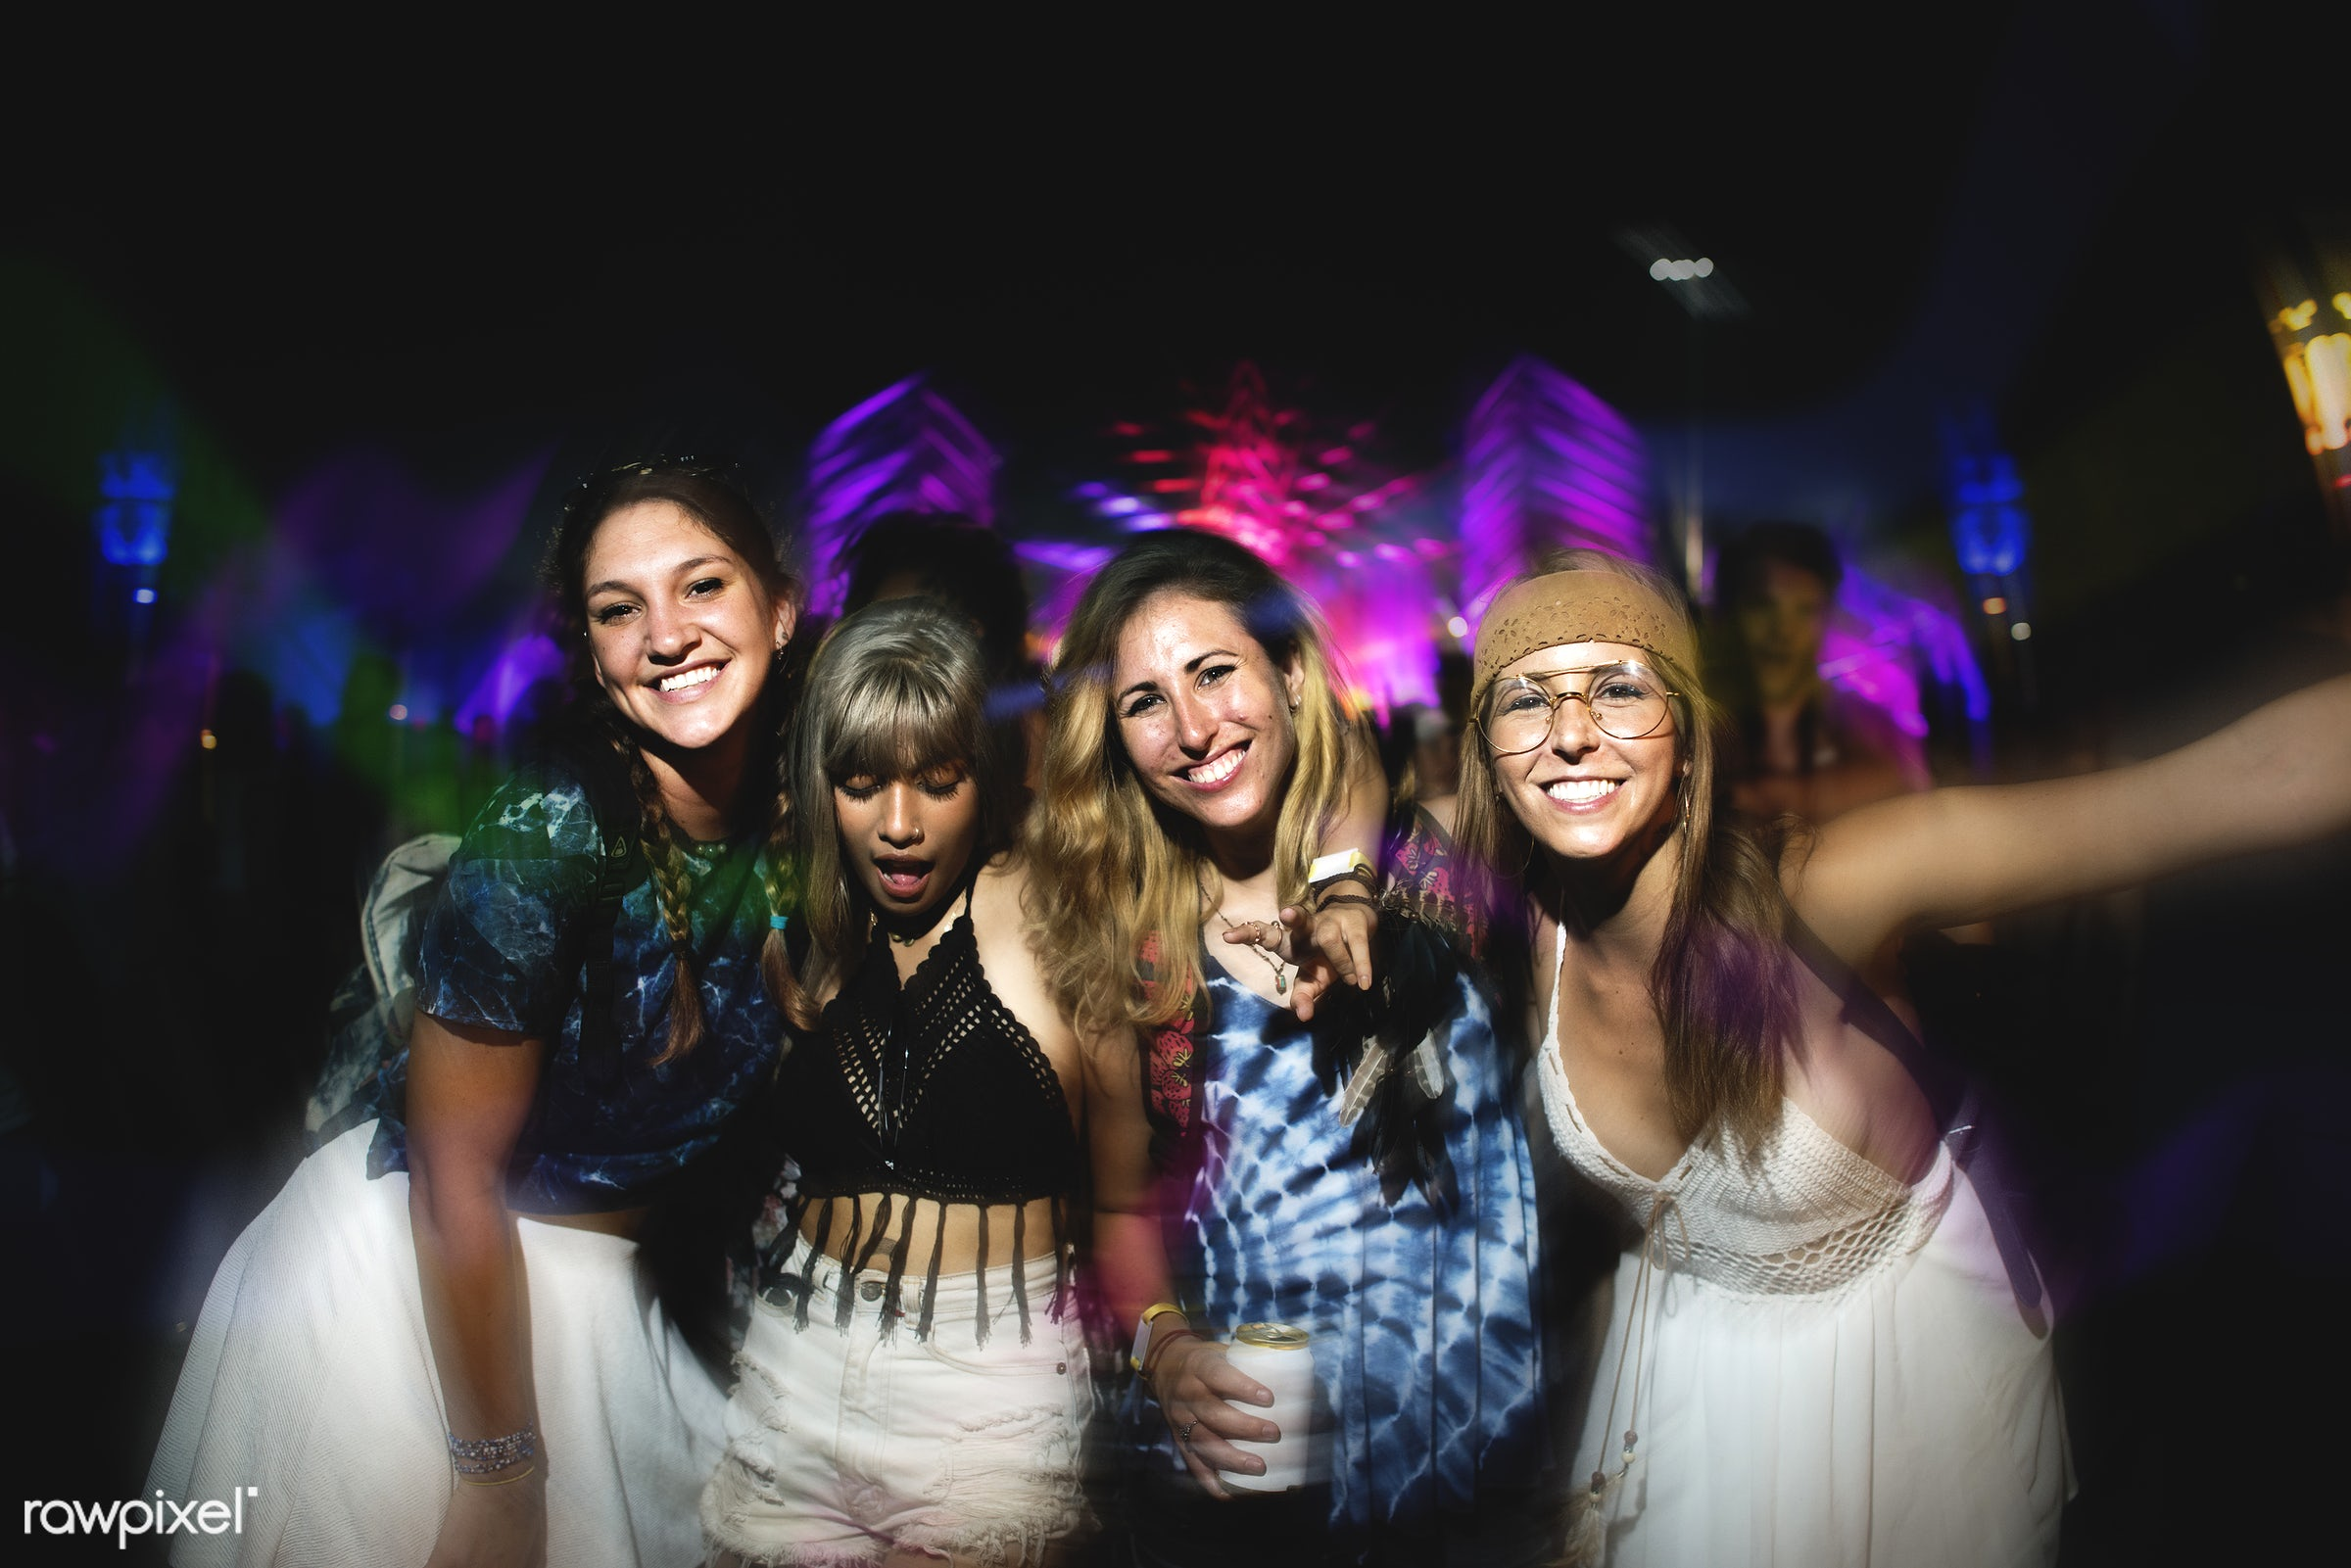 concert, bonding, party, people, friends, woman, event, lifestyle, weekend, friendship, leisure, happiness, fun, youth,...